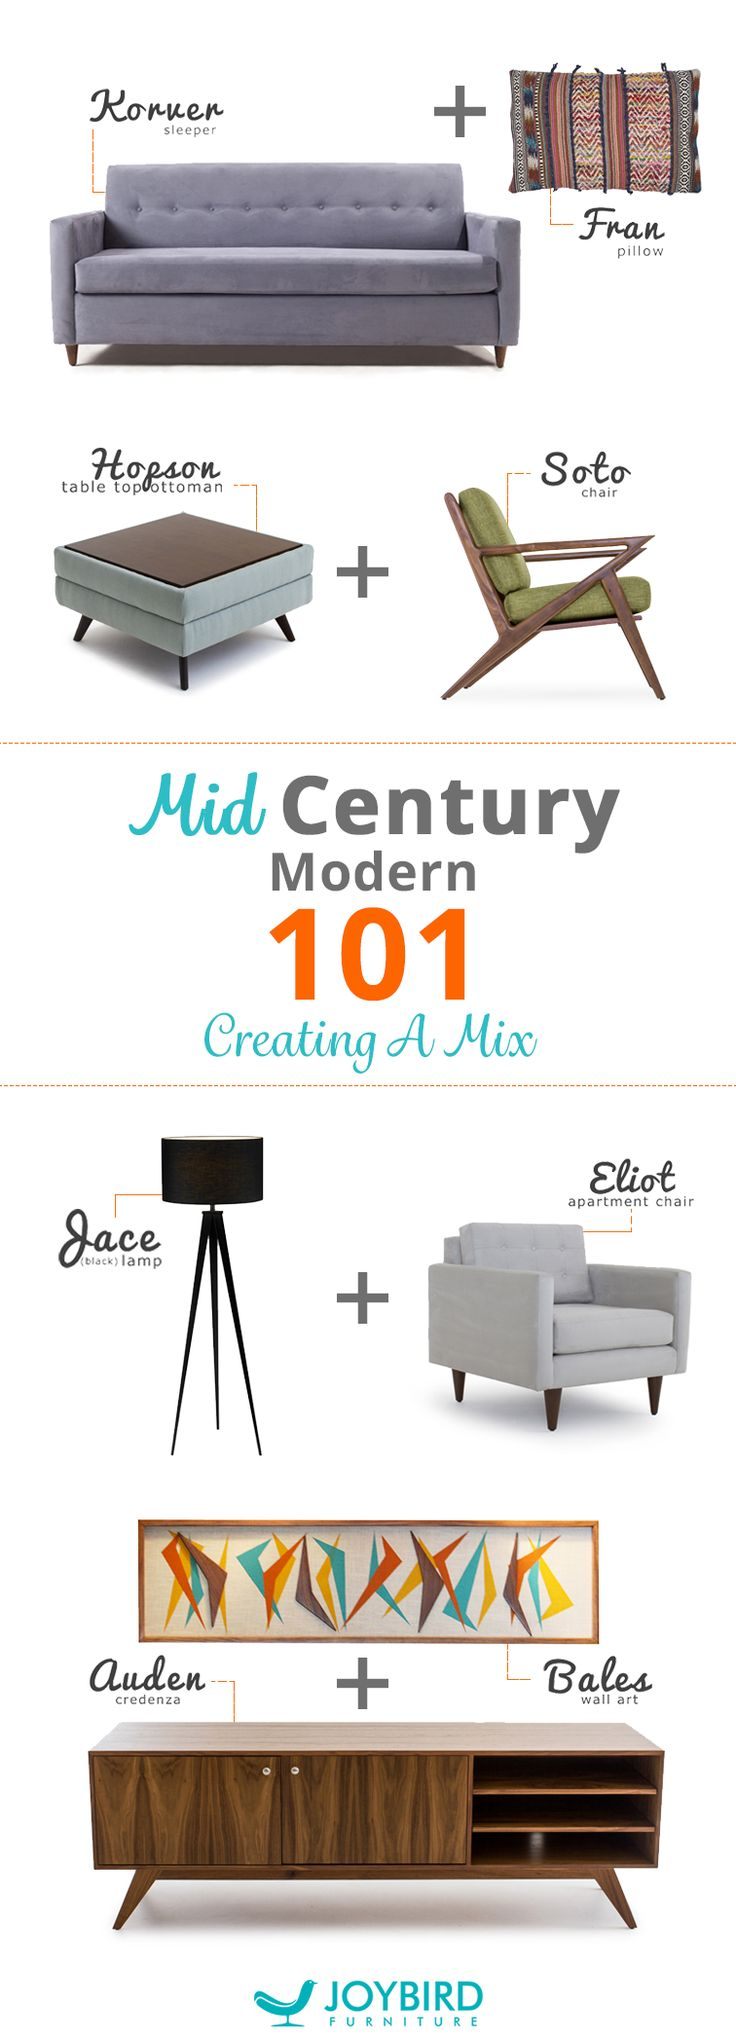 Looking to mix up the furniture in your home? Look nofurther than Joybird's selection of Mid-Century Modern piecesfor every room in your home. From lamps to sleeper sofas,mixing up living furniture will take your entertaining space tothe next level. Add unexpected touches to your home withJoybird's stylish selection of pieces that add instant style.Each piece is one-of-a-kind and handcrafted to ensure thehighest quality. Mix and match your home with Joybird today.